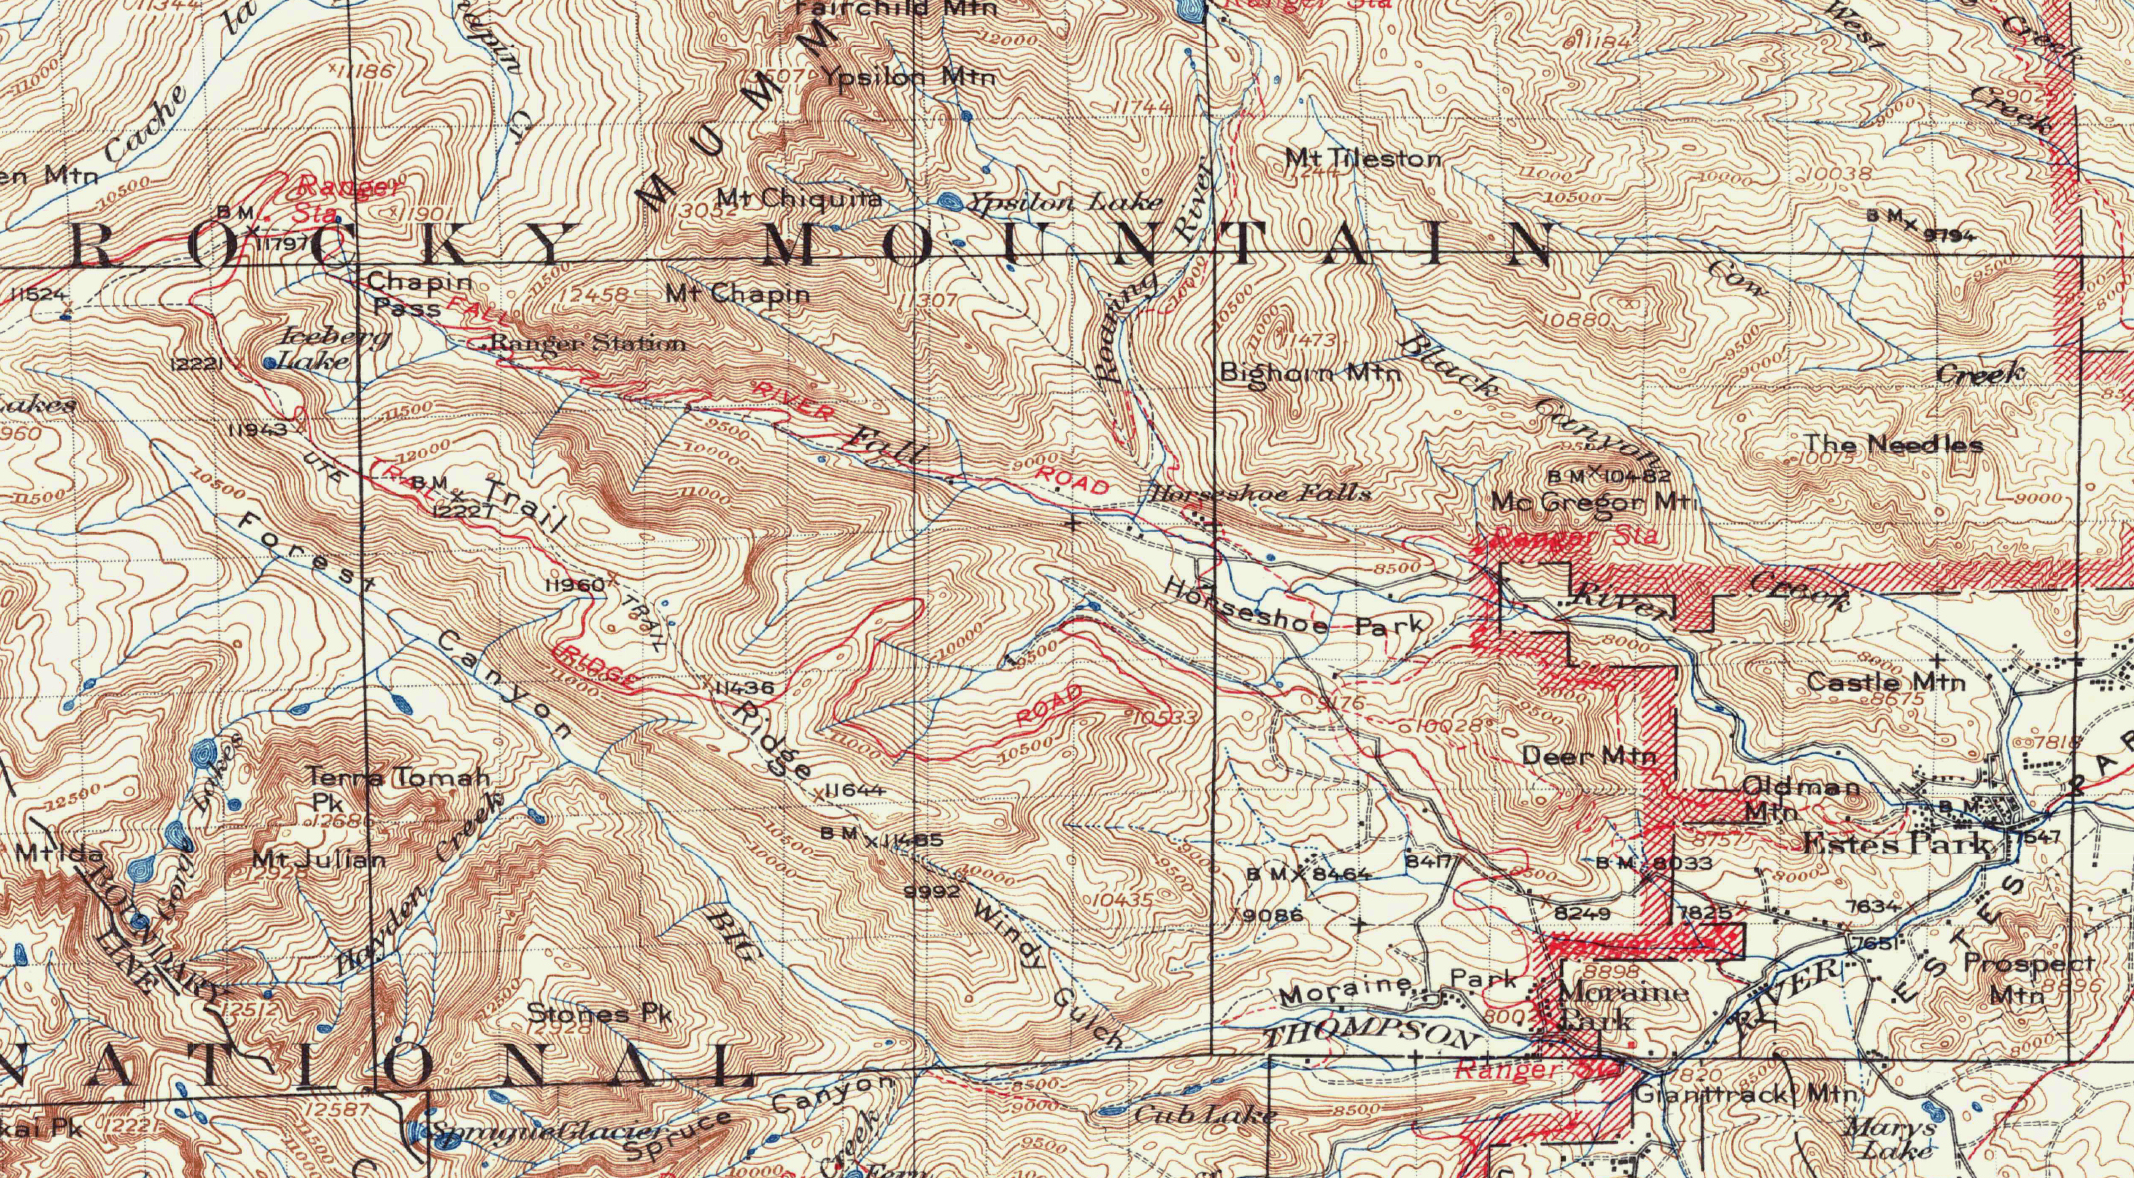 Rocky Mountain National Park 1915 USGS Topographical Map — Purple